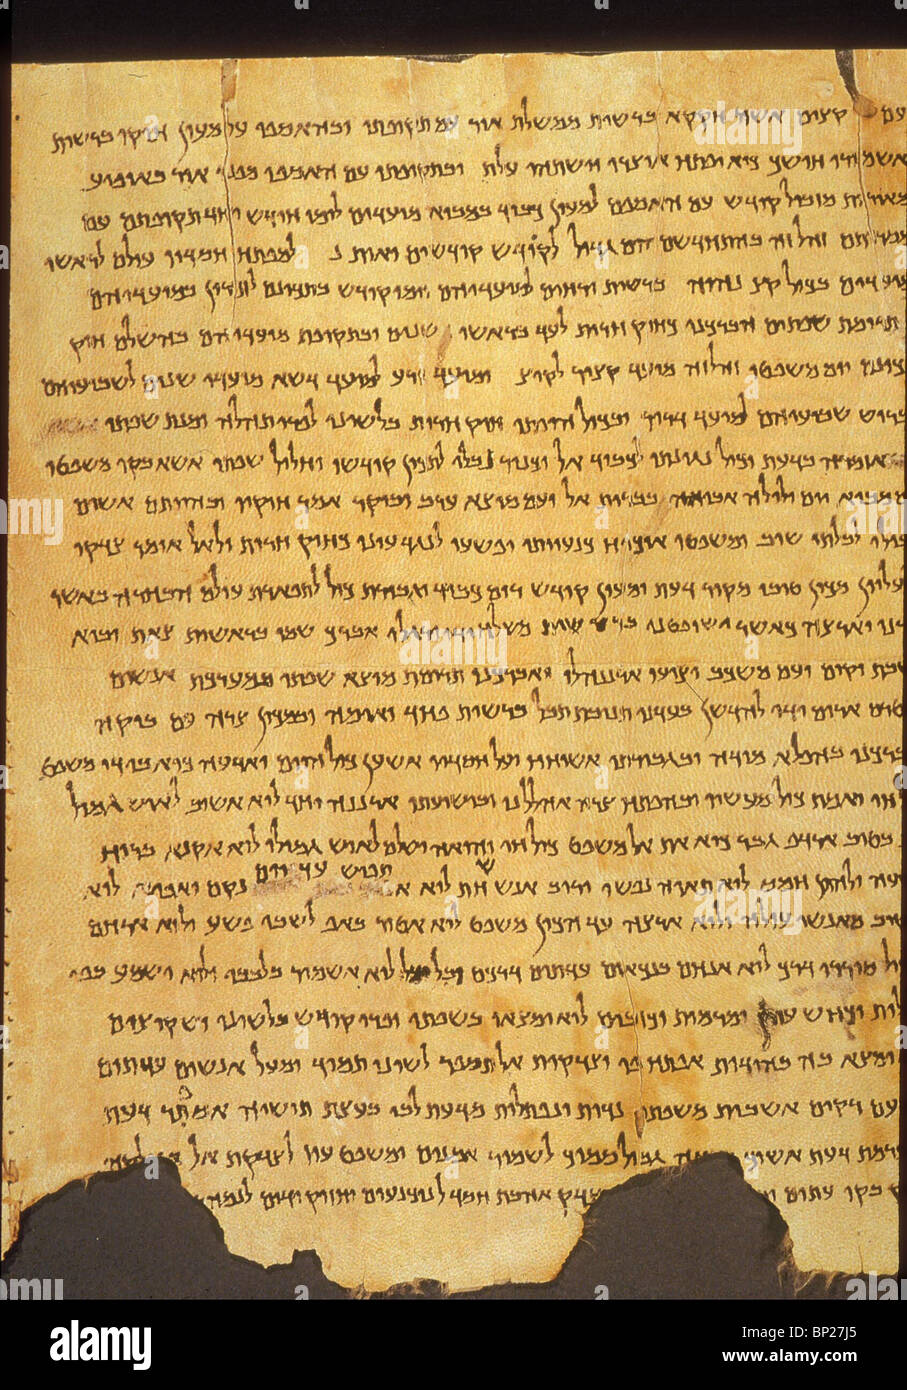 870. DETAIL OF THE ISAIAH SCROLL, QUMRAN, CAVE NO. 6 - Stock Image